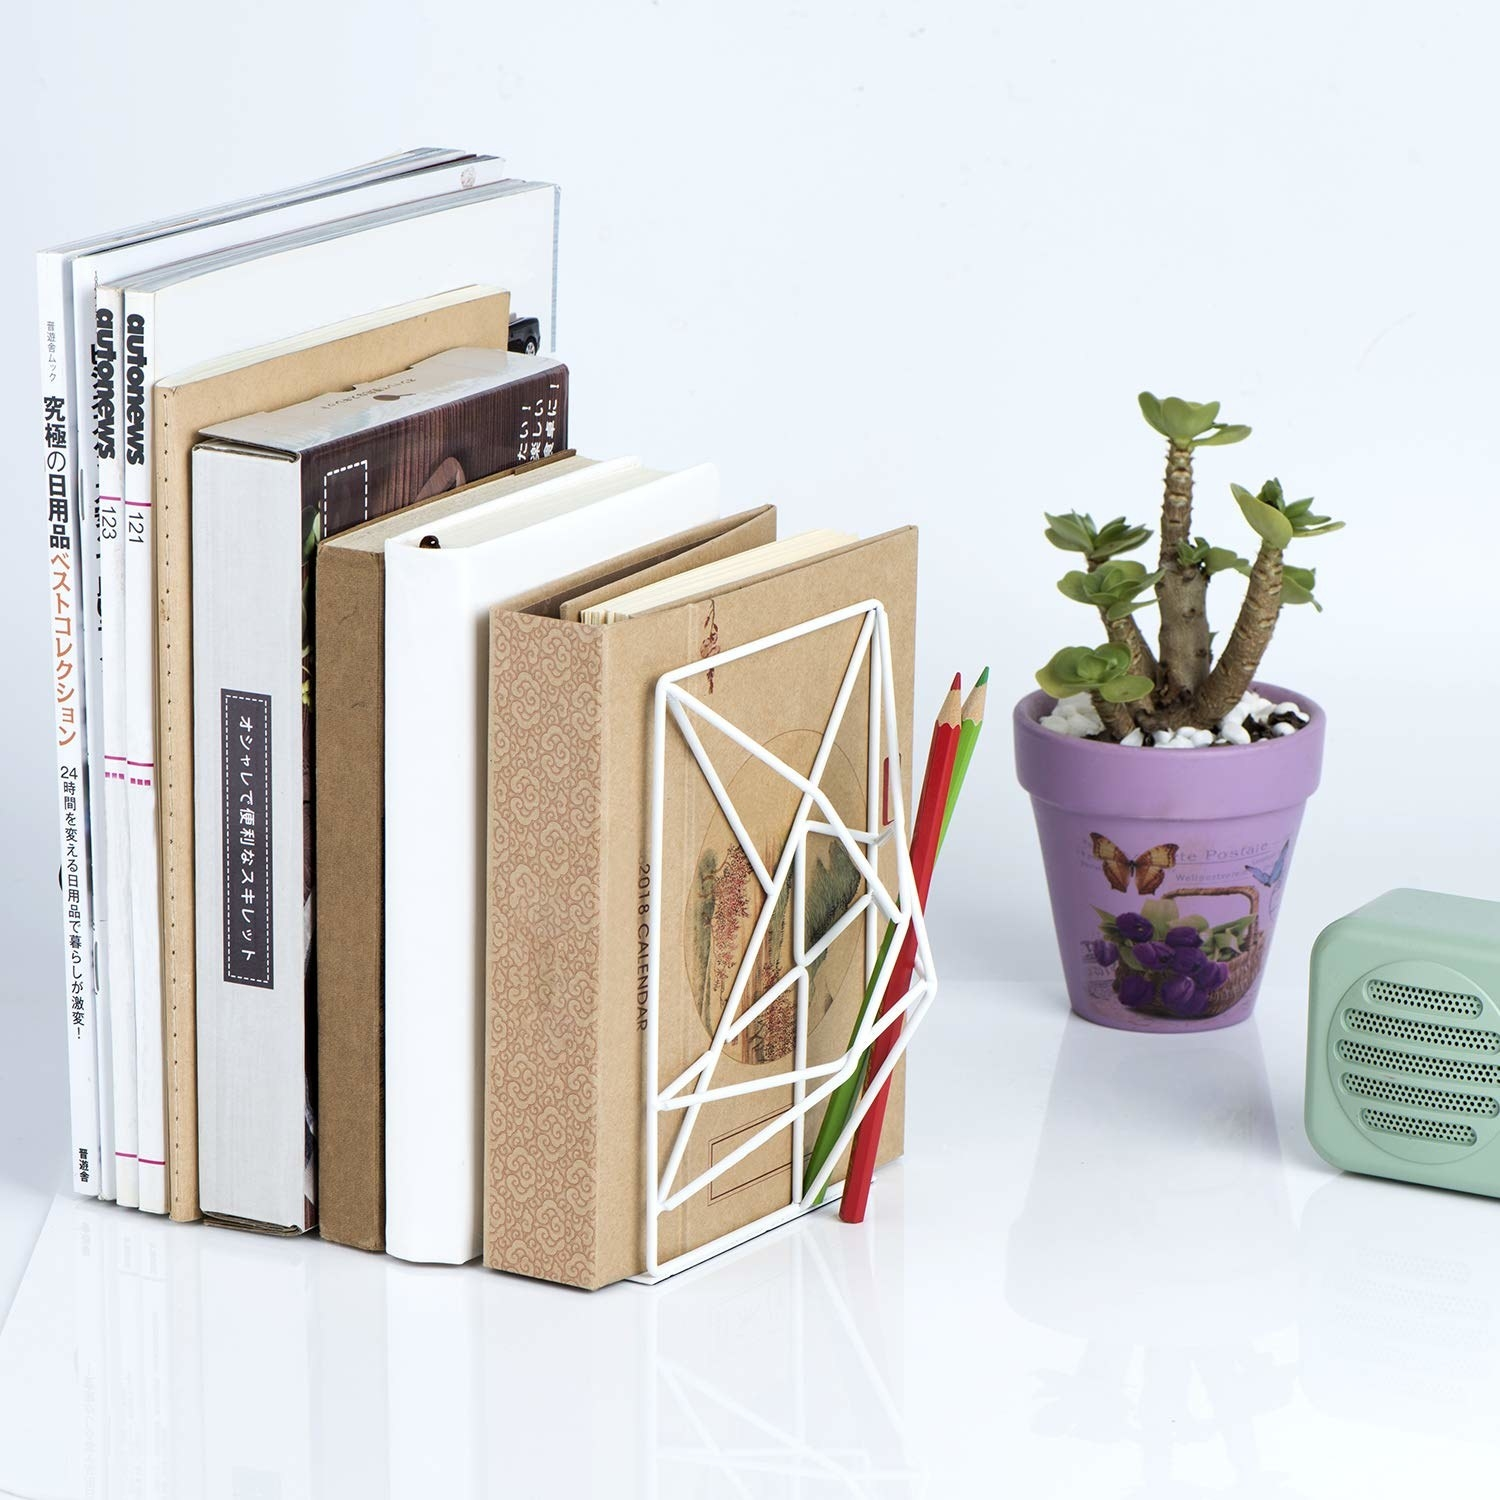 A stack of books with a wiry bookend on one side